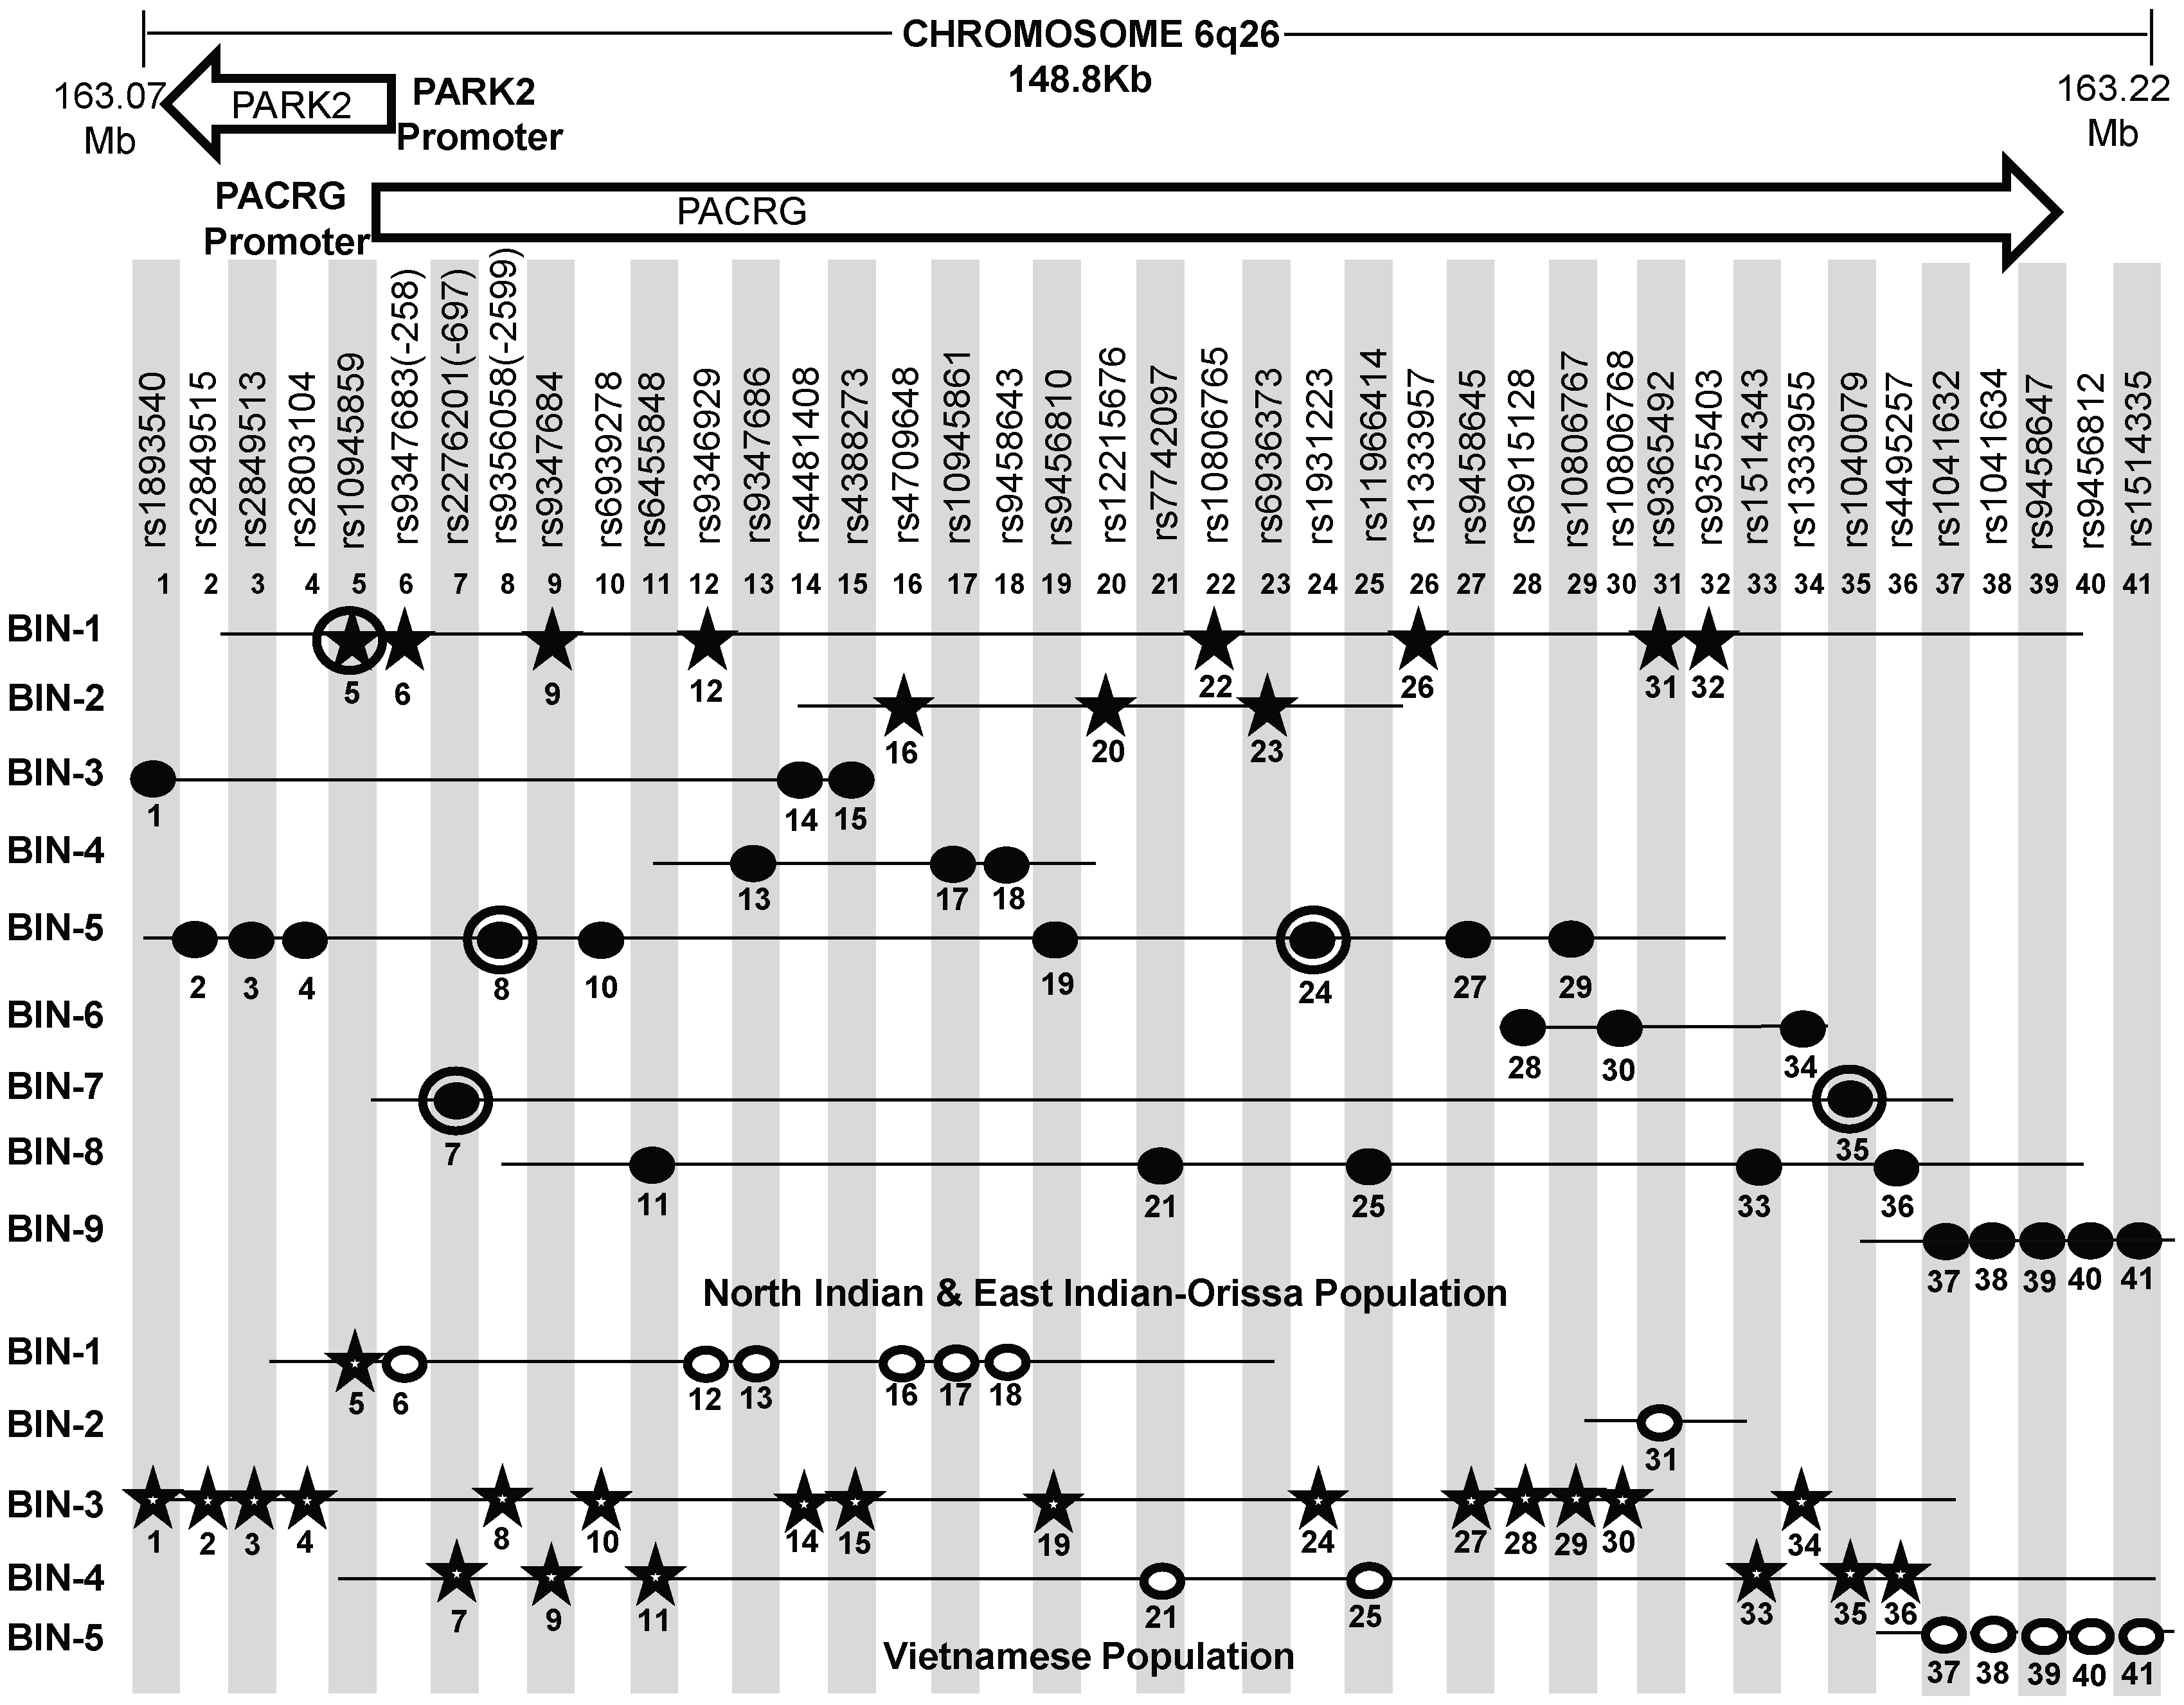 A schematic lay-out of the BIN structure (r<sup>2</sup>≥0.80) in the regulatory region of the PARK2 and PACRG genes in North Indian and East Indian-Orissa and Vietnamese population for 41 SNPs spanning 148 Kb region of Chromosome 6q26, where 36 SNPs are common to both Vietnamese and Indian population and 5 significant SNPs (No. 20, 22, 23, 26, 32) are exclusively studied in the Indian population.